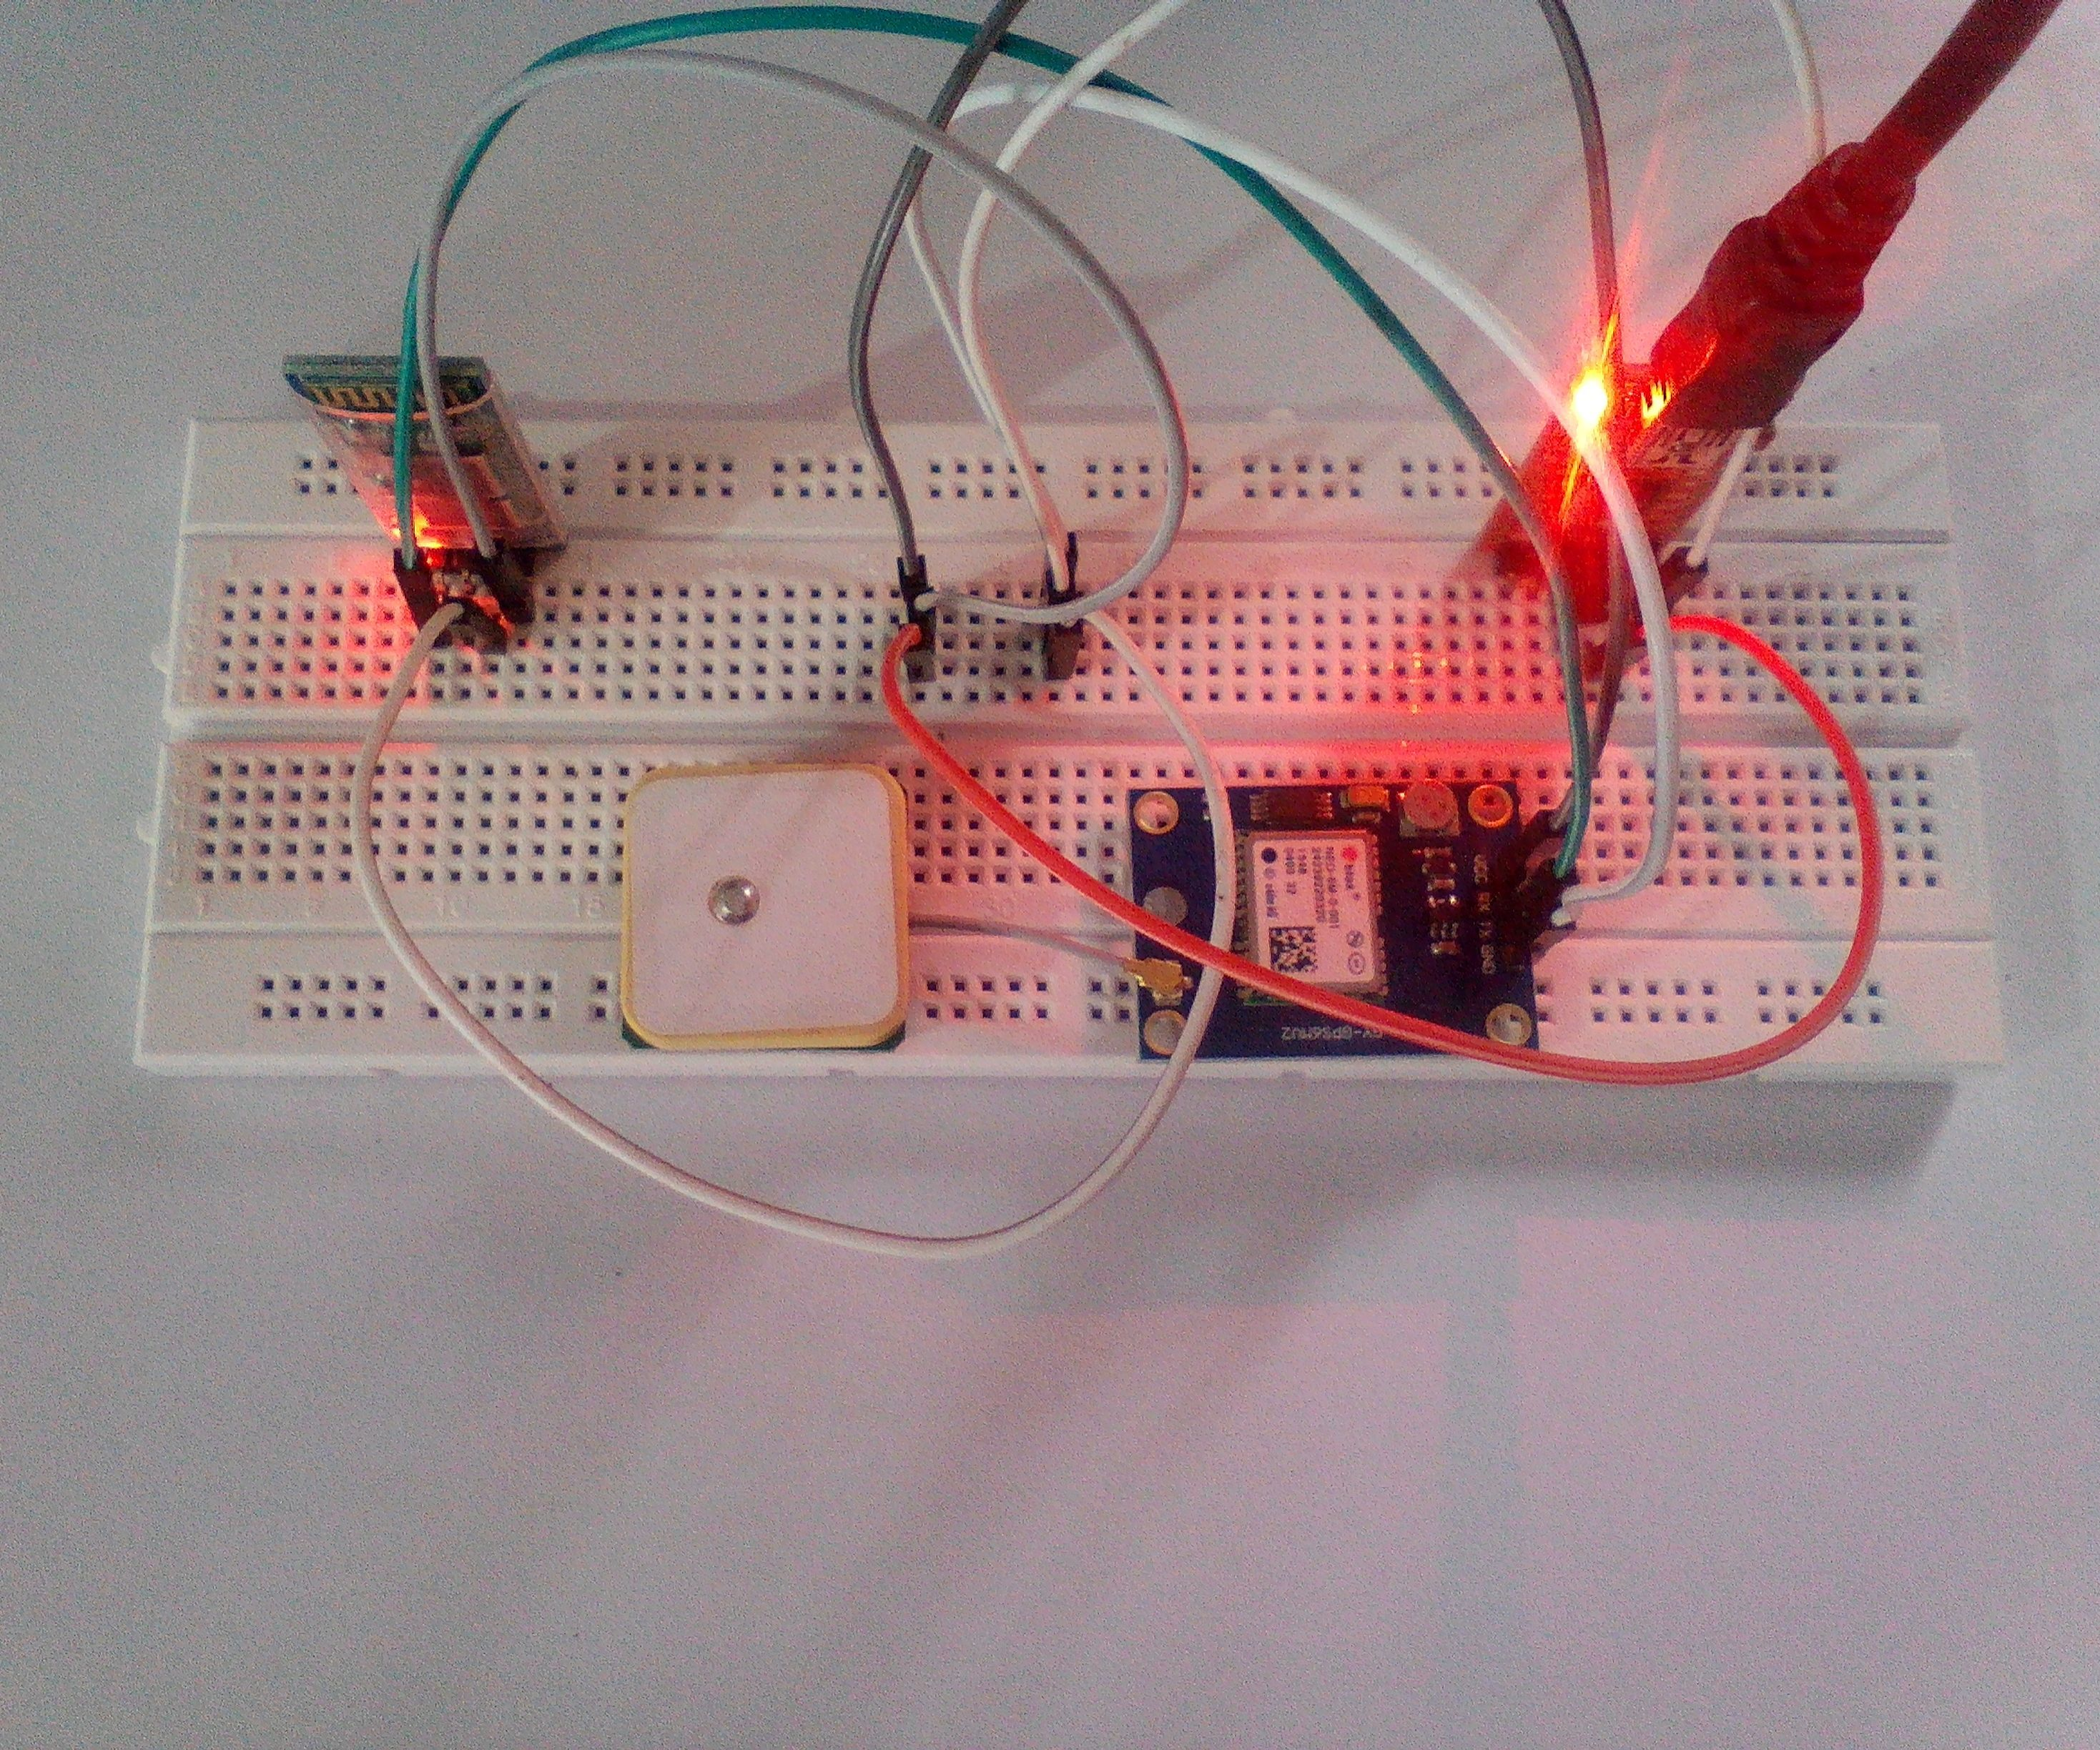 GPS TRACKER WITH NO PROGRAMMING